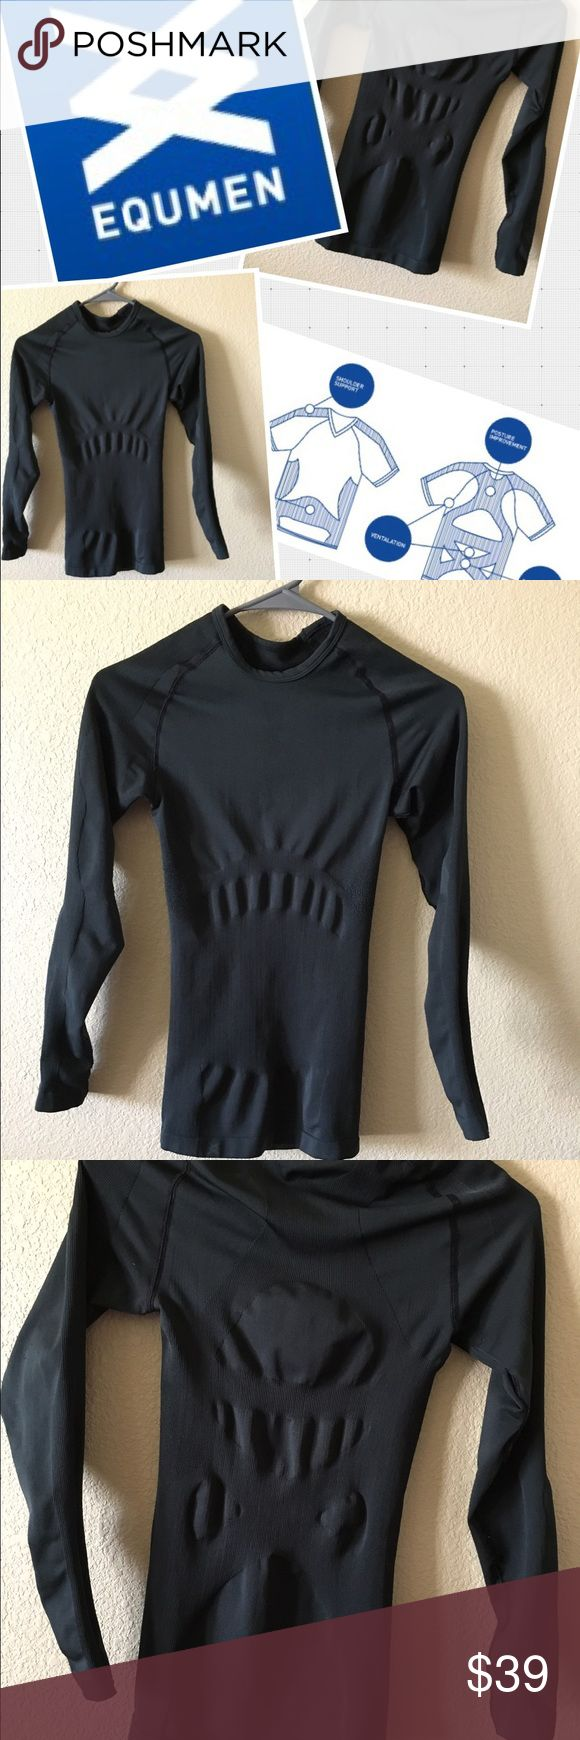 Equmen Core Precision long sleeve undershirt sz L Equmen Core Precision black long sleeve undershirt. EUC. Retail New for $99 Amazon. Get it here for $39! Equmen Shirts Tees - Long Sleeve